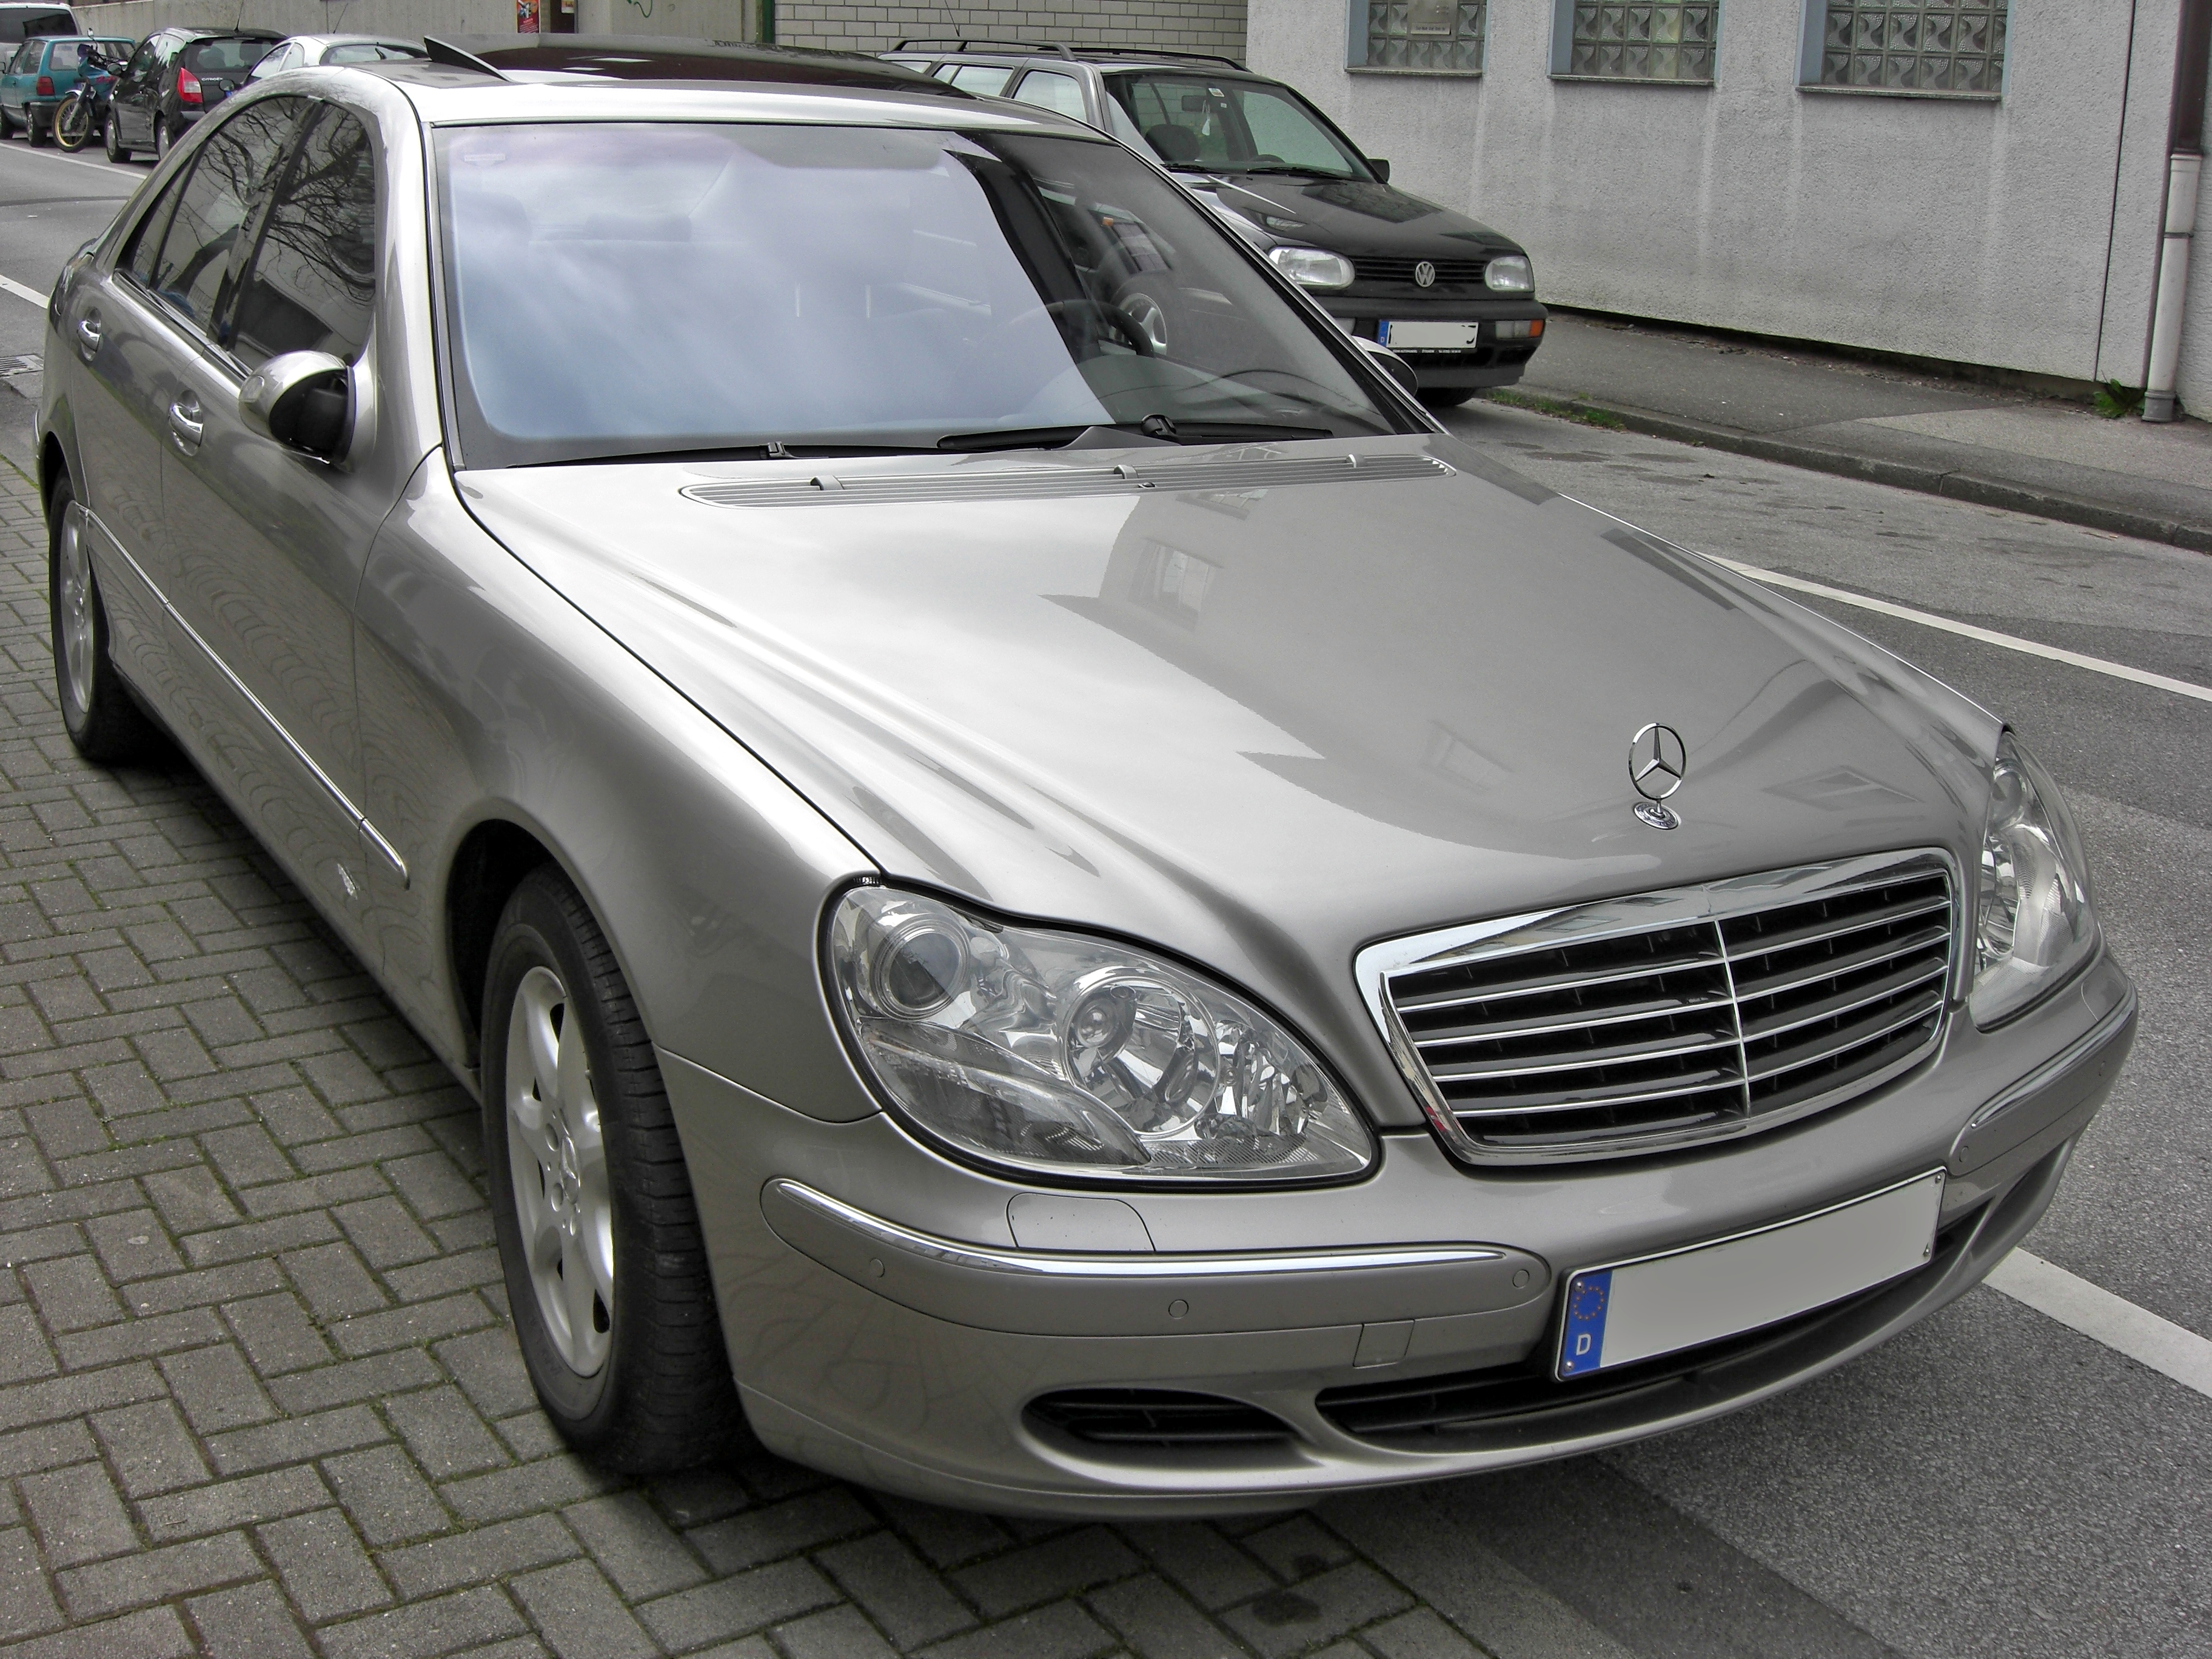 """""""Mercedes-Benz - S-class (W220) - S 350"""" — card from user yulianyurchak in  Yandex.Collections"""